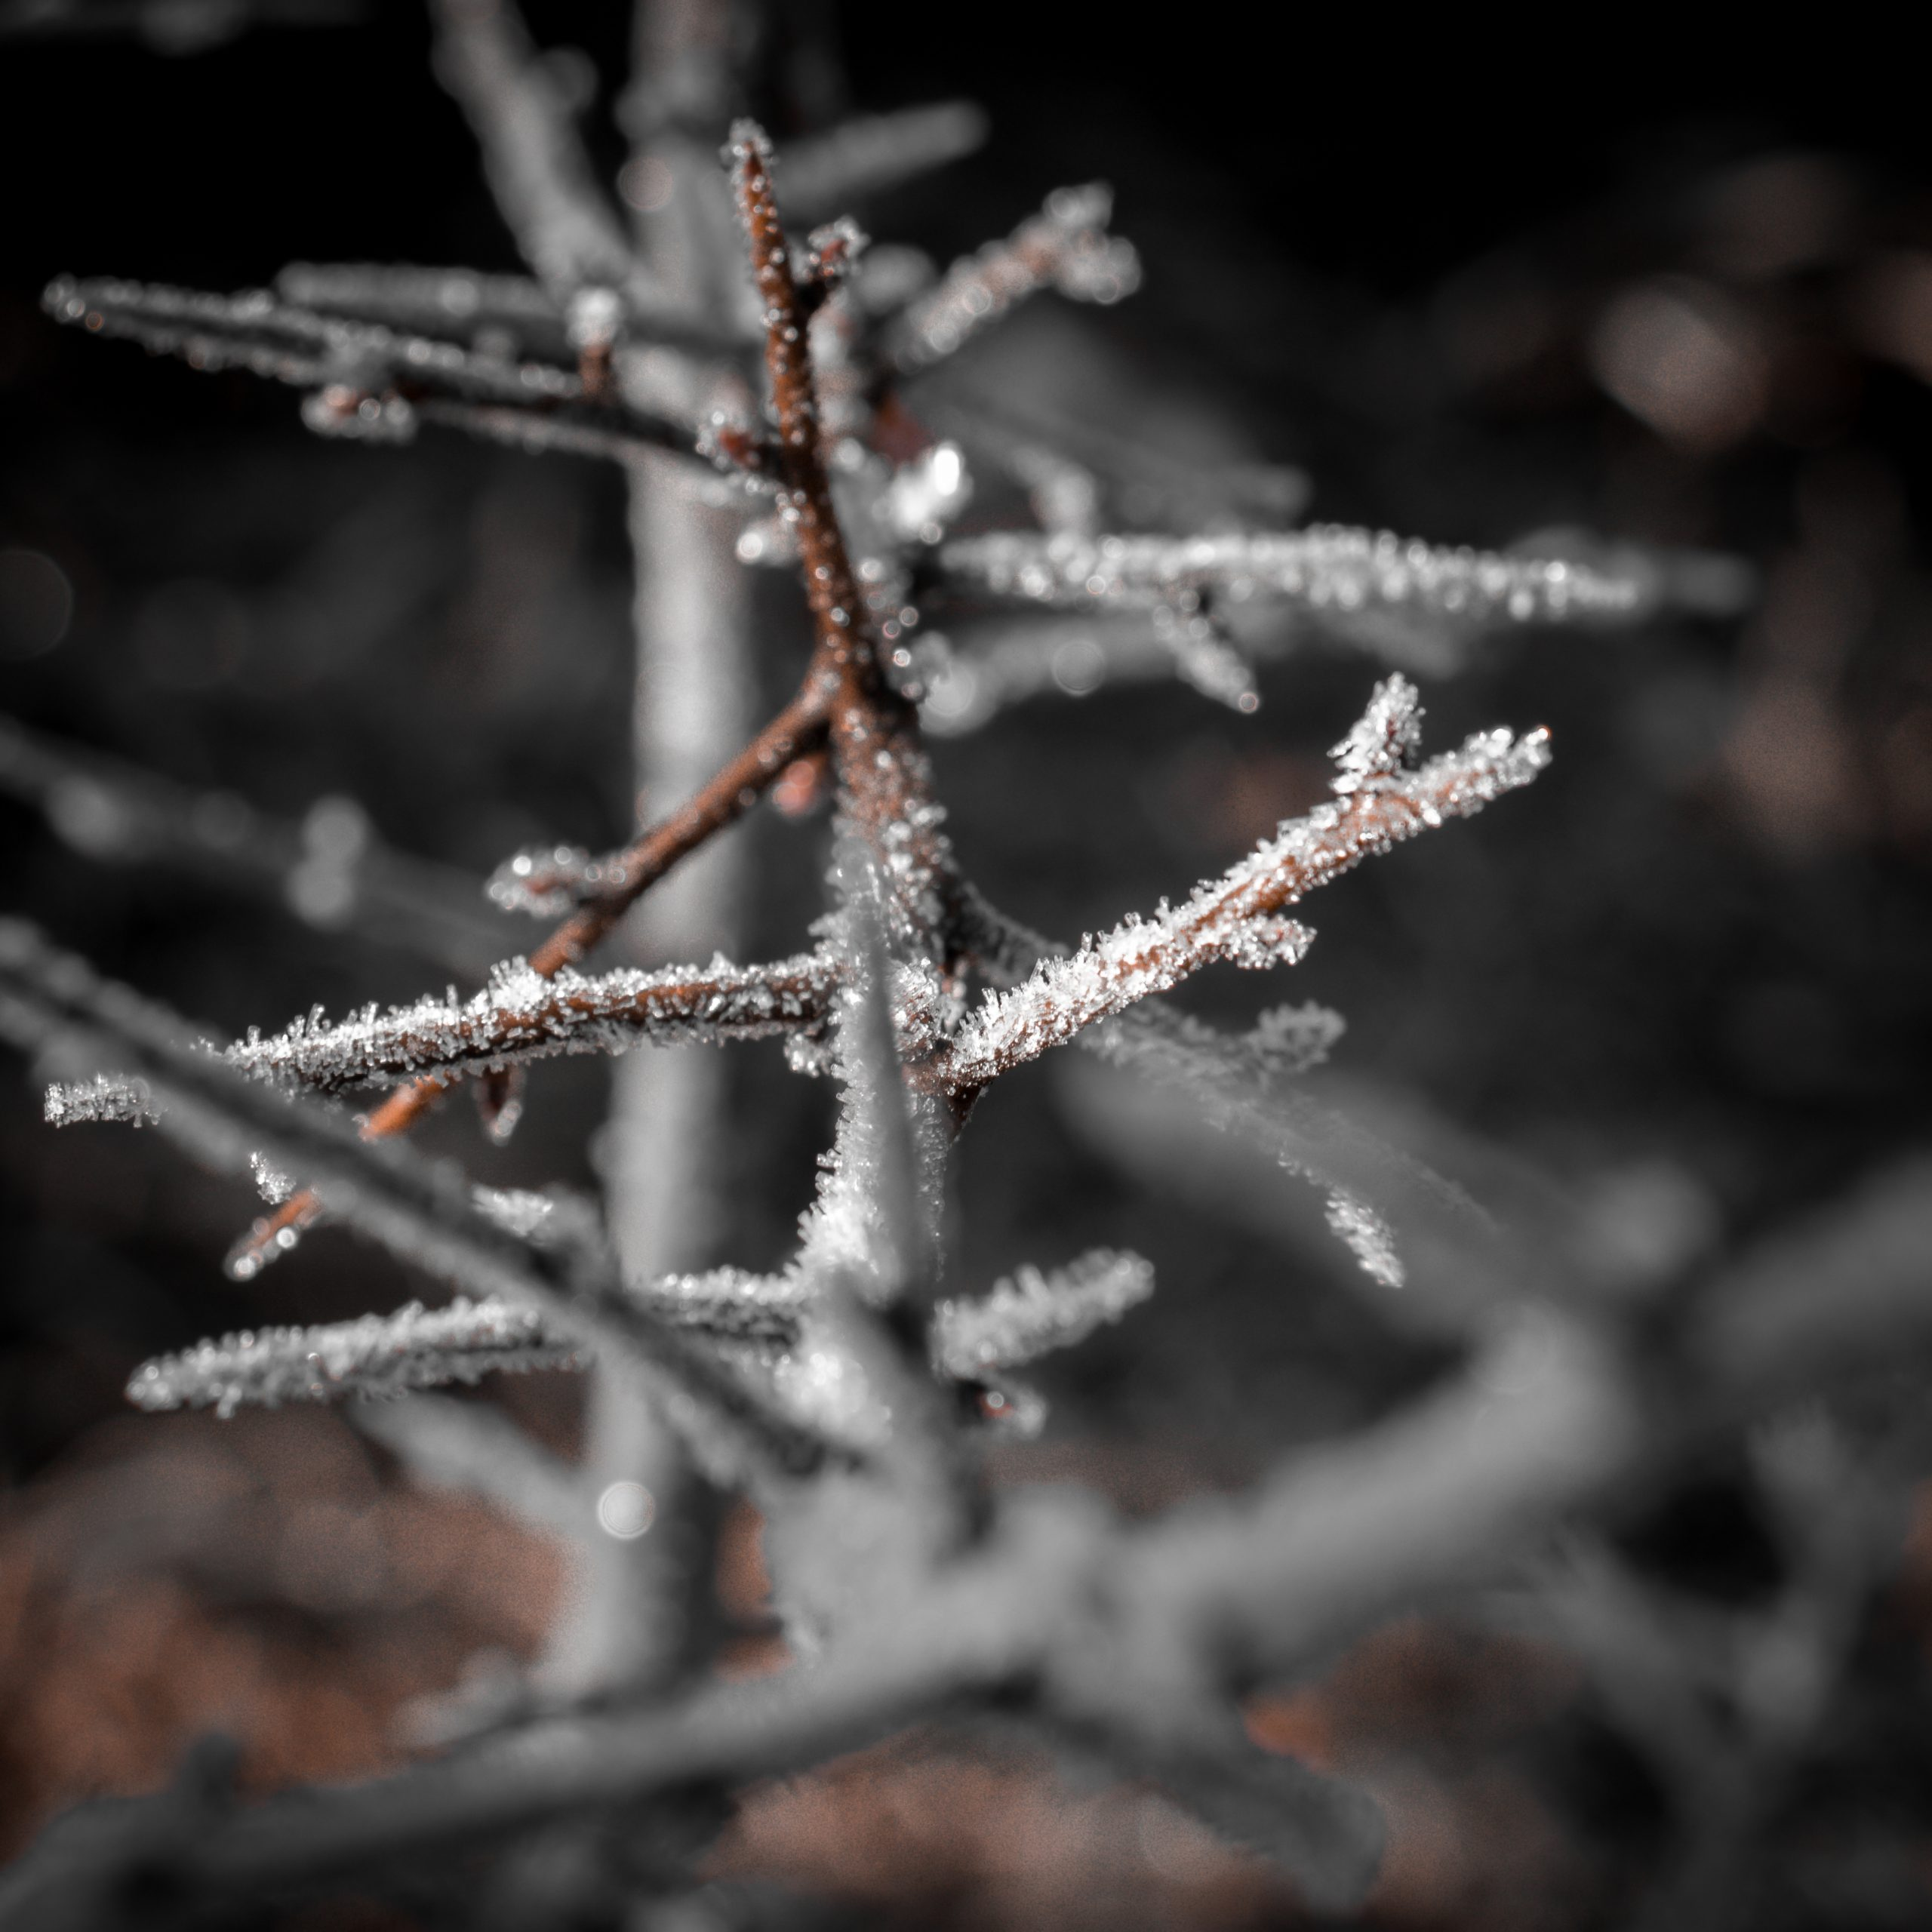 Frosted branch of a plant